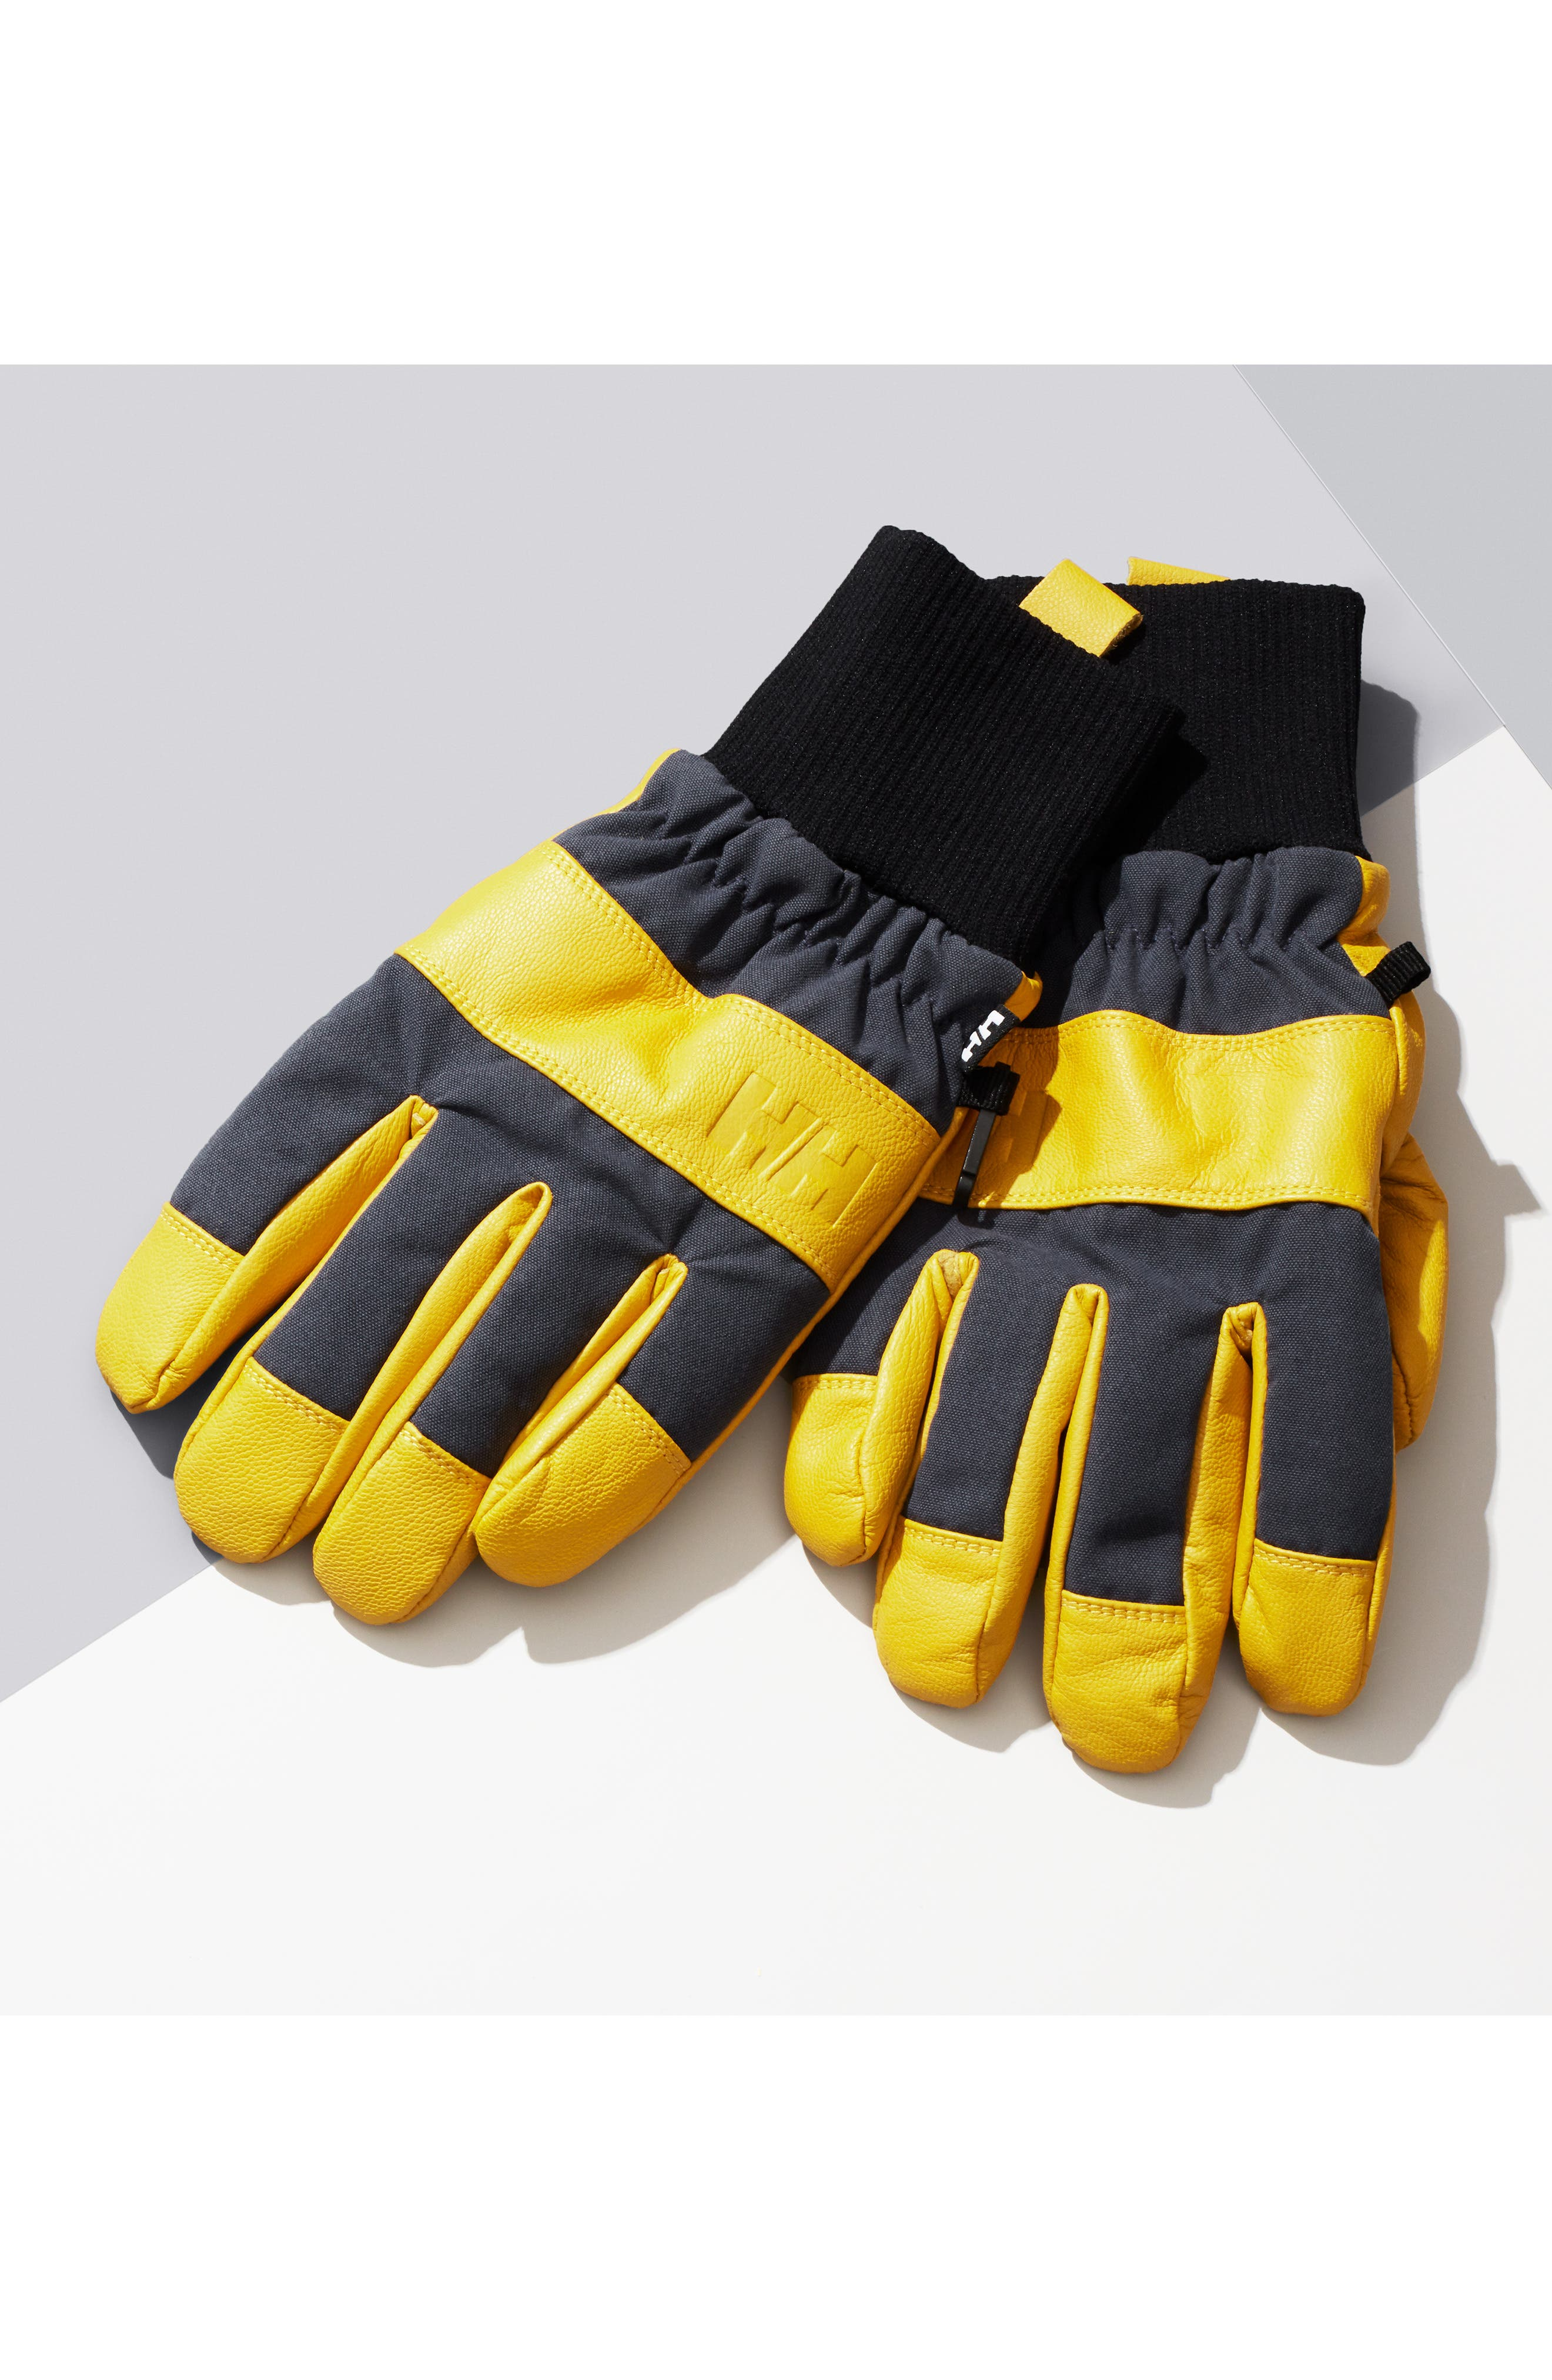 Dawn Patrol Gloves,                             Alternate thumbnail 2, color,                             451